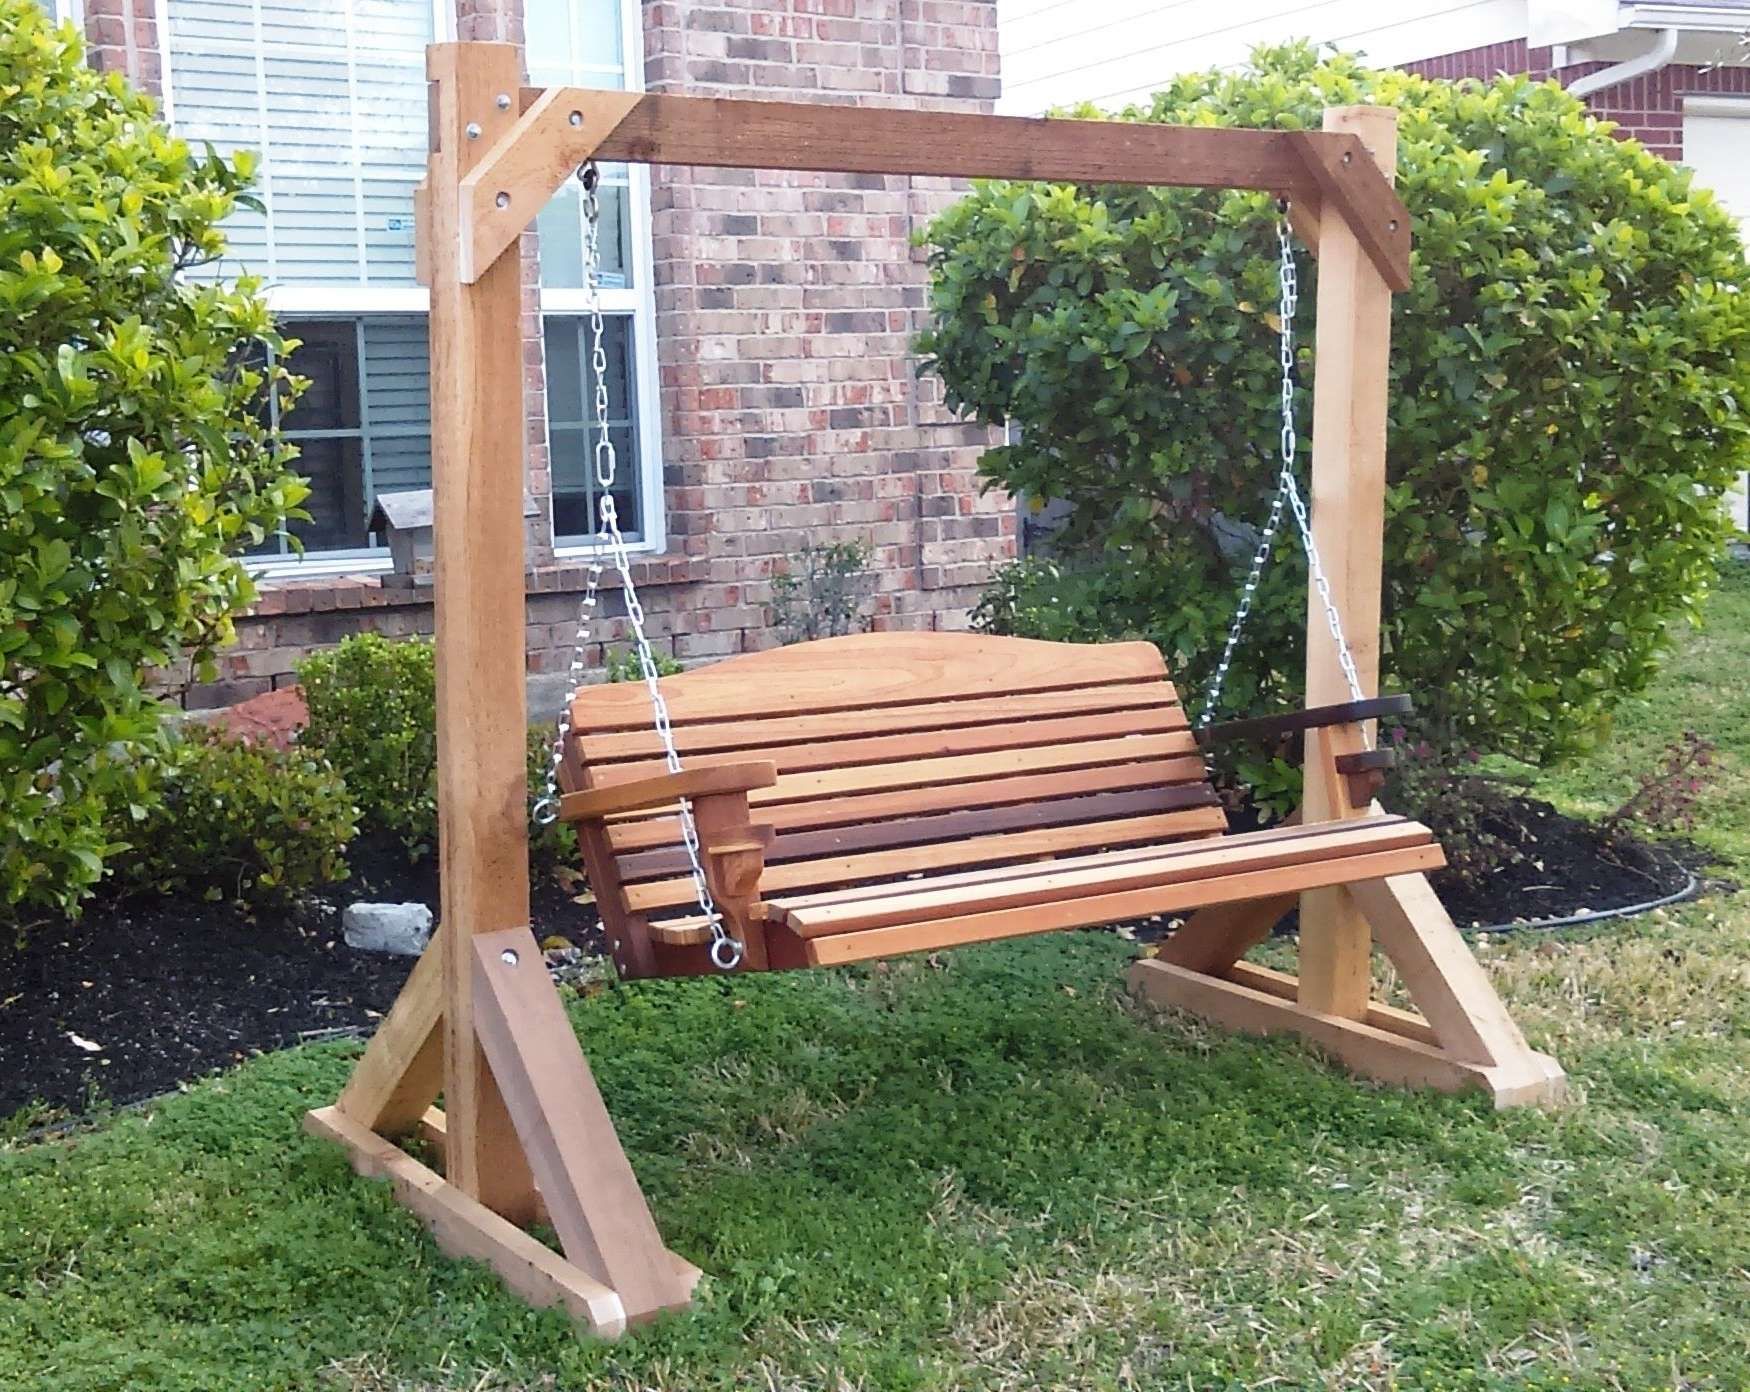 Free Standing Porch Swing Diy — Randolph Indoor And Outdoor With Regard To 2020 Canopy Patio Porch Swing With Stand (Gallery 21 of 30)